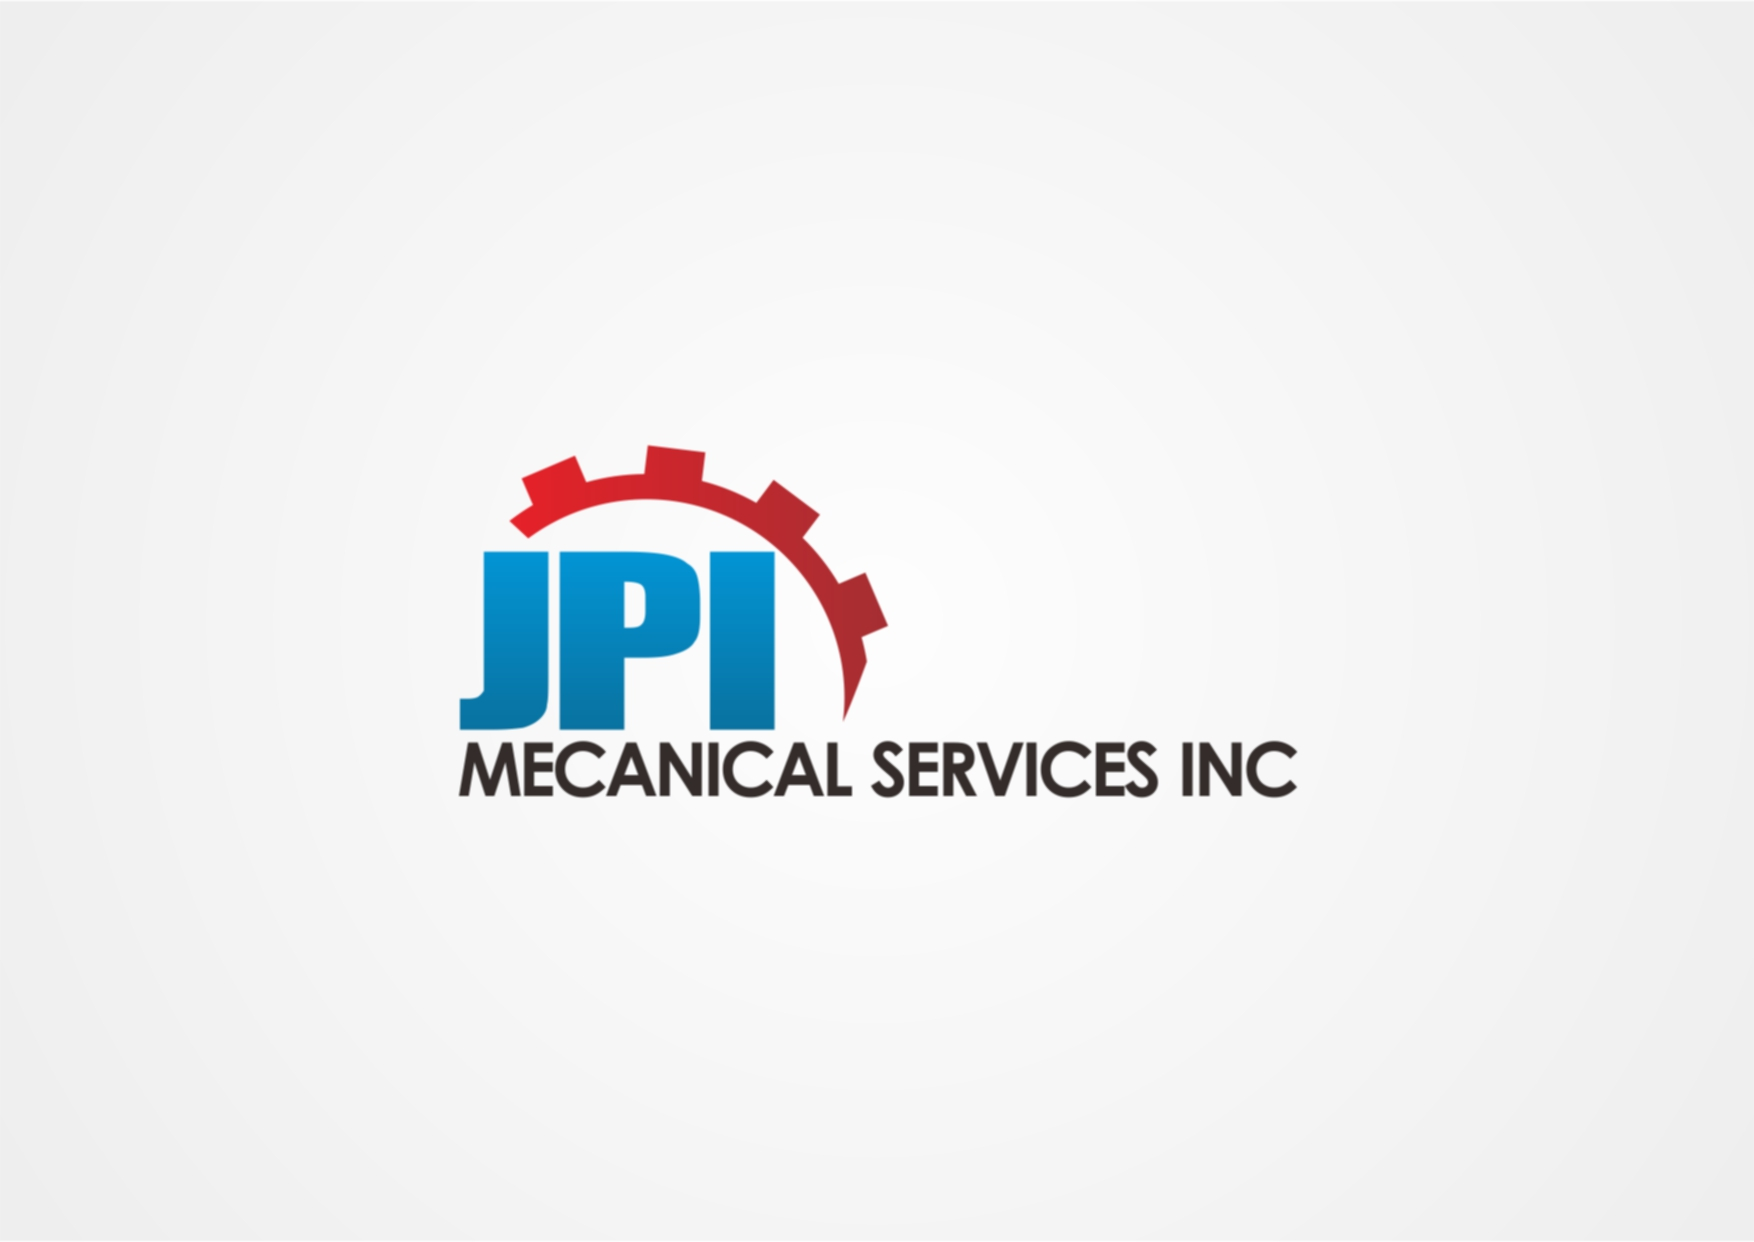 Logo Design by Private User - Entry No. 109 in the Logo Design Contest Inspiring Logo Design for JPI Mecanical Services.